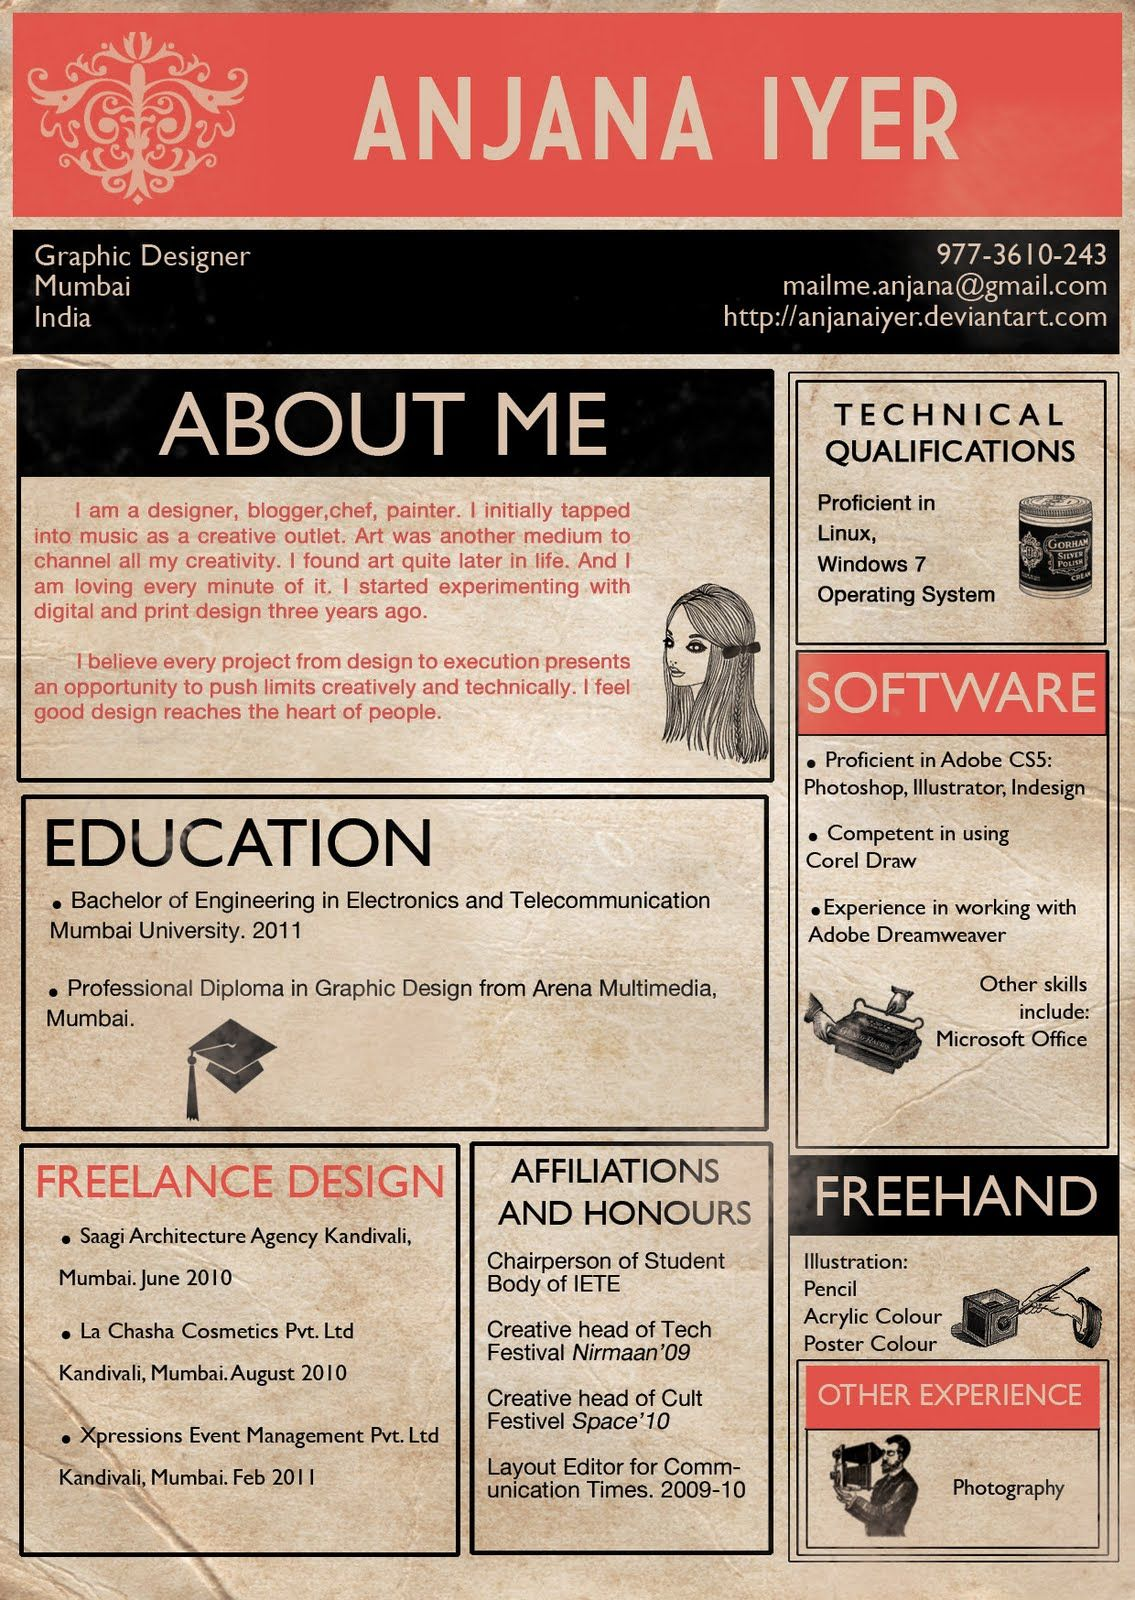 best images about resume infographic resume 17 best images about resume infographic resume creative resume and cv design